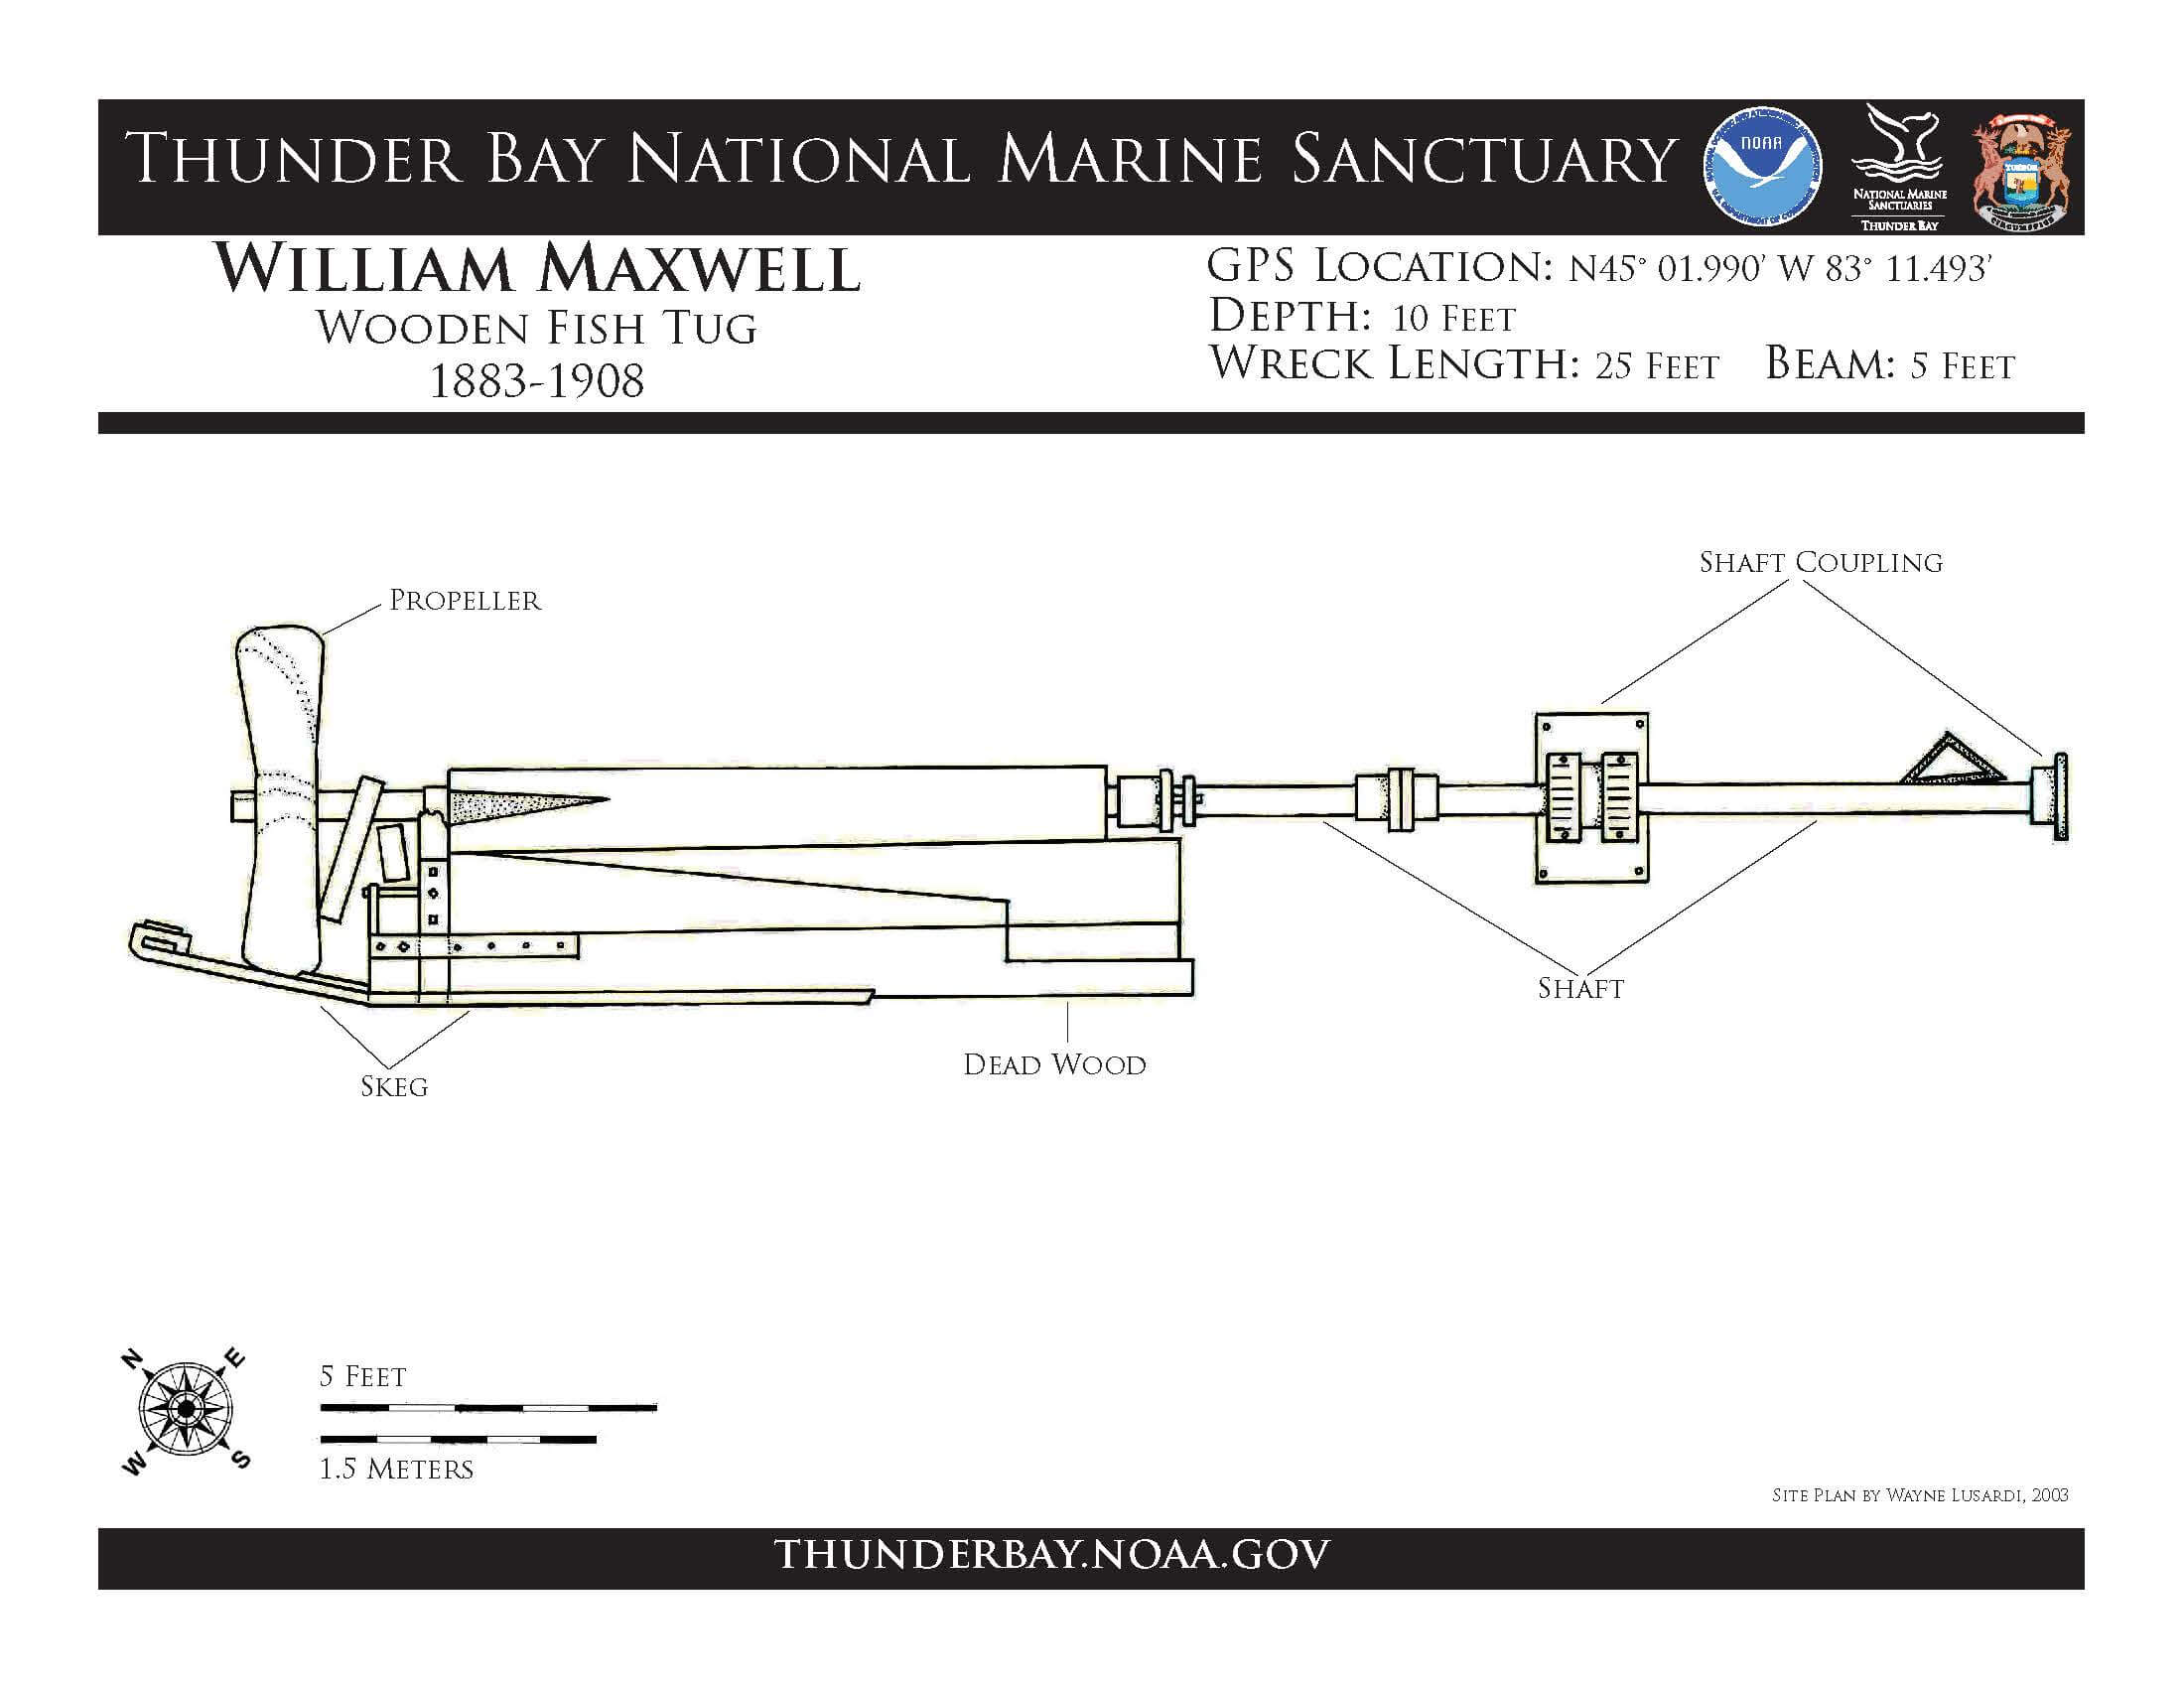 diagram of the William Maxwell wreck